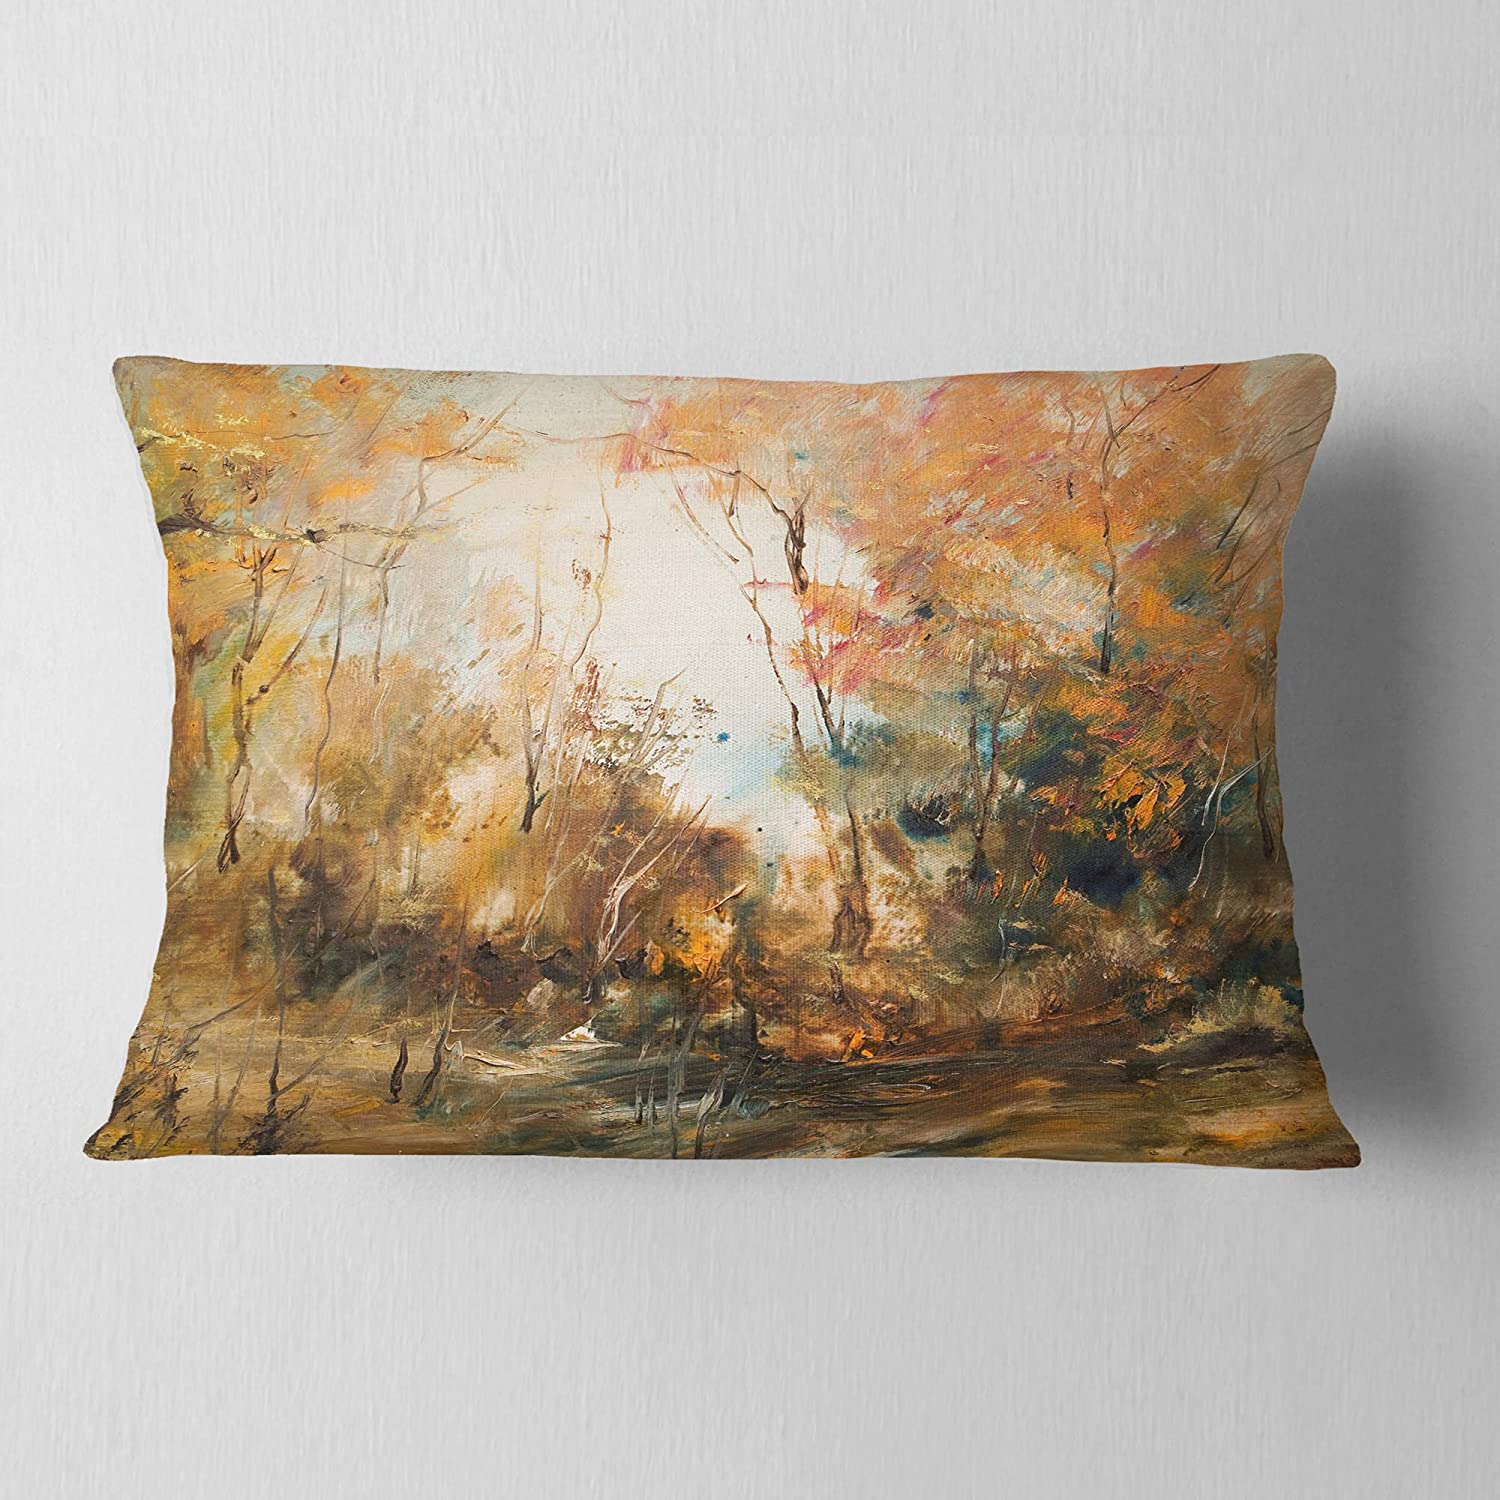 Sofa Throw Pillow 12 in Designart CU8512-12-20 Forest in Autumn Oil Landscape Painting Lumbar Cushion Cover for Living Room Insert Printed On Both Side in x 20 in